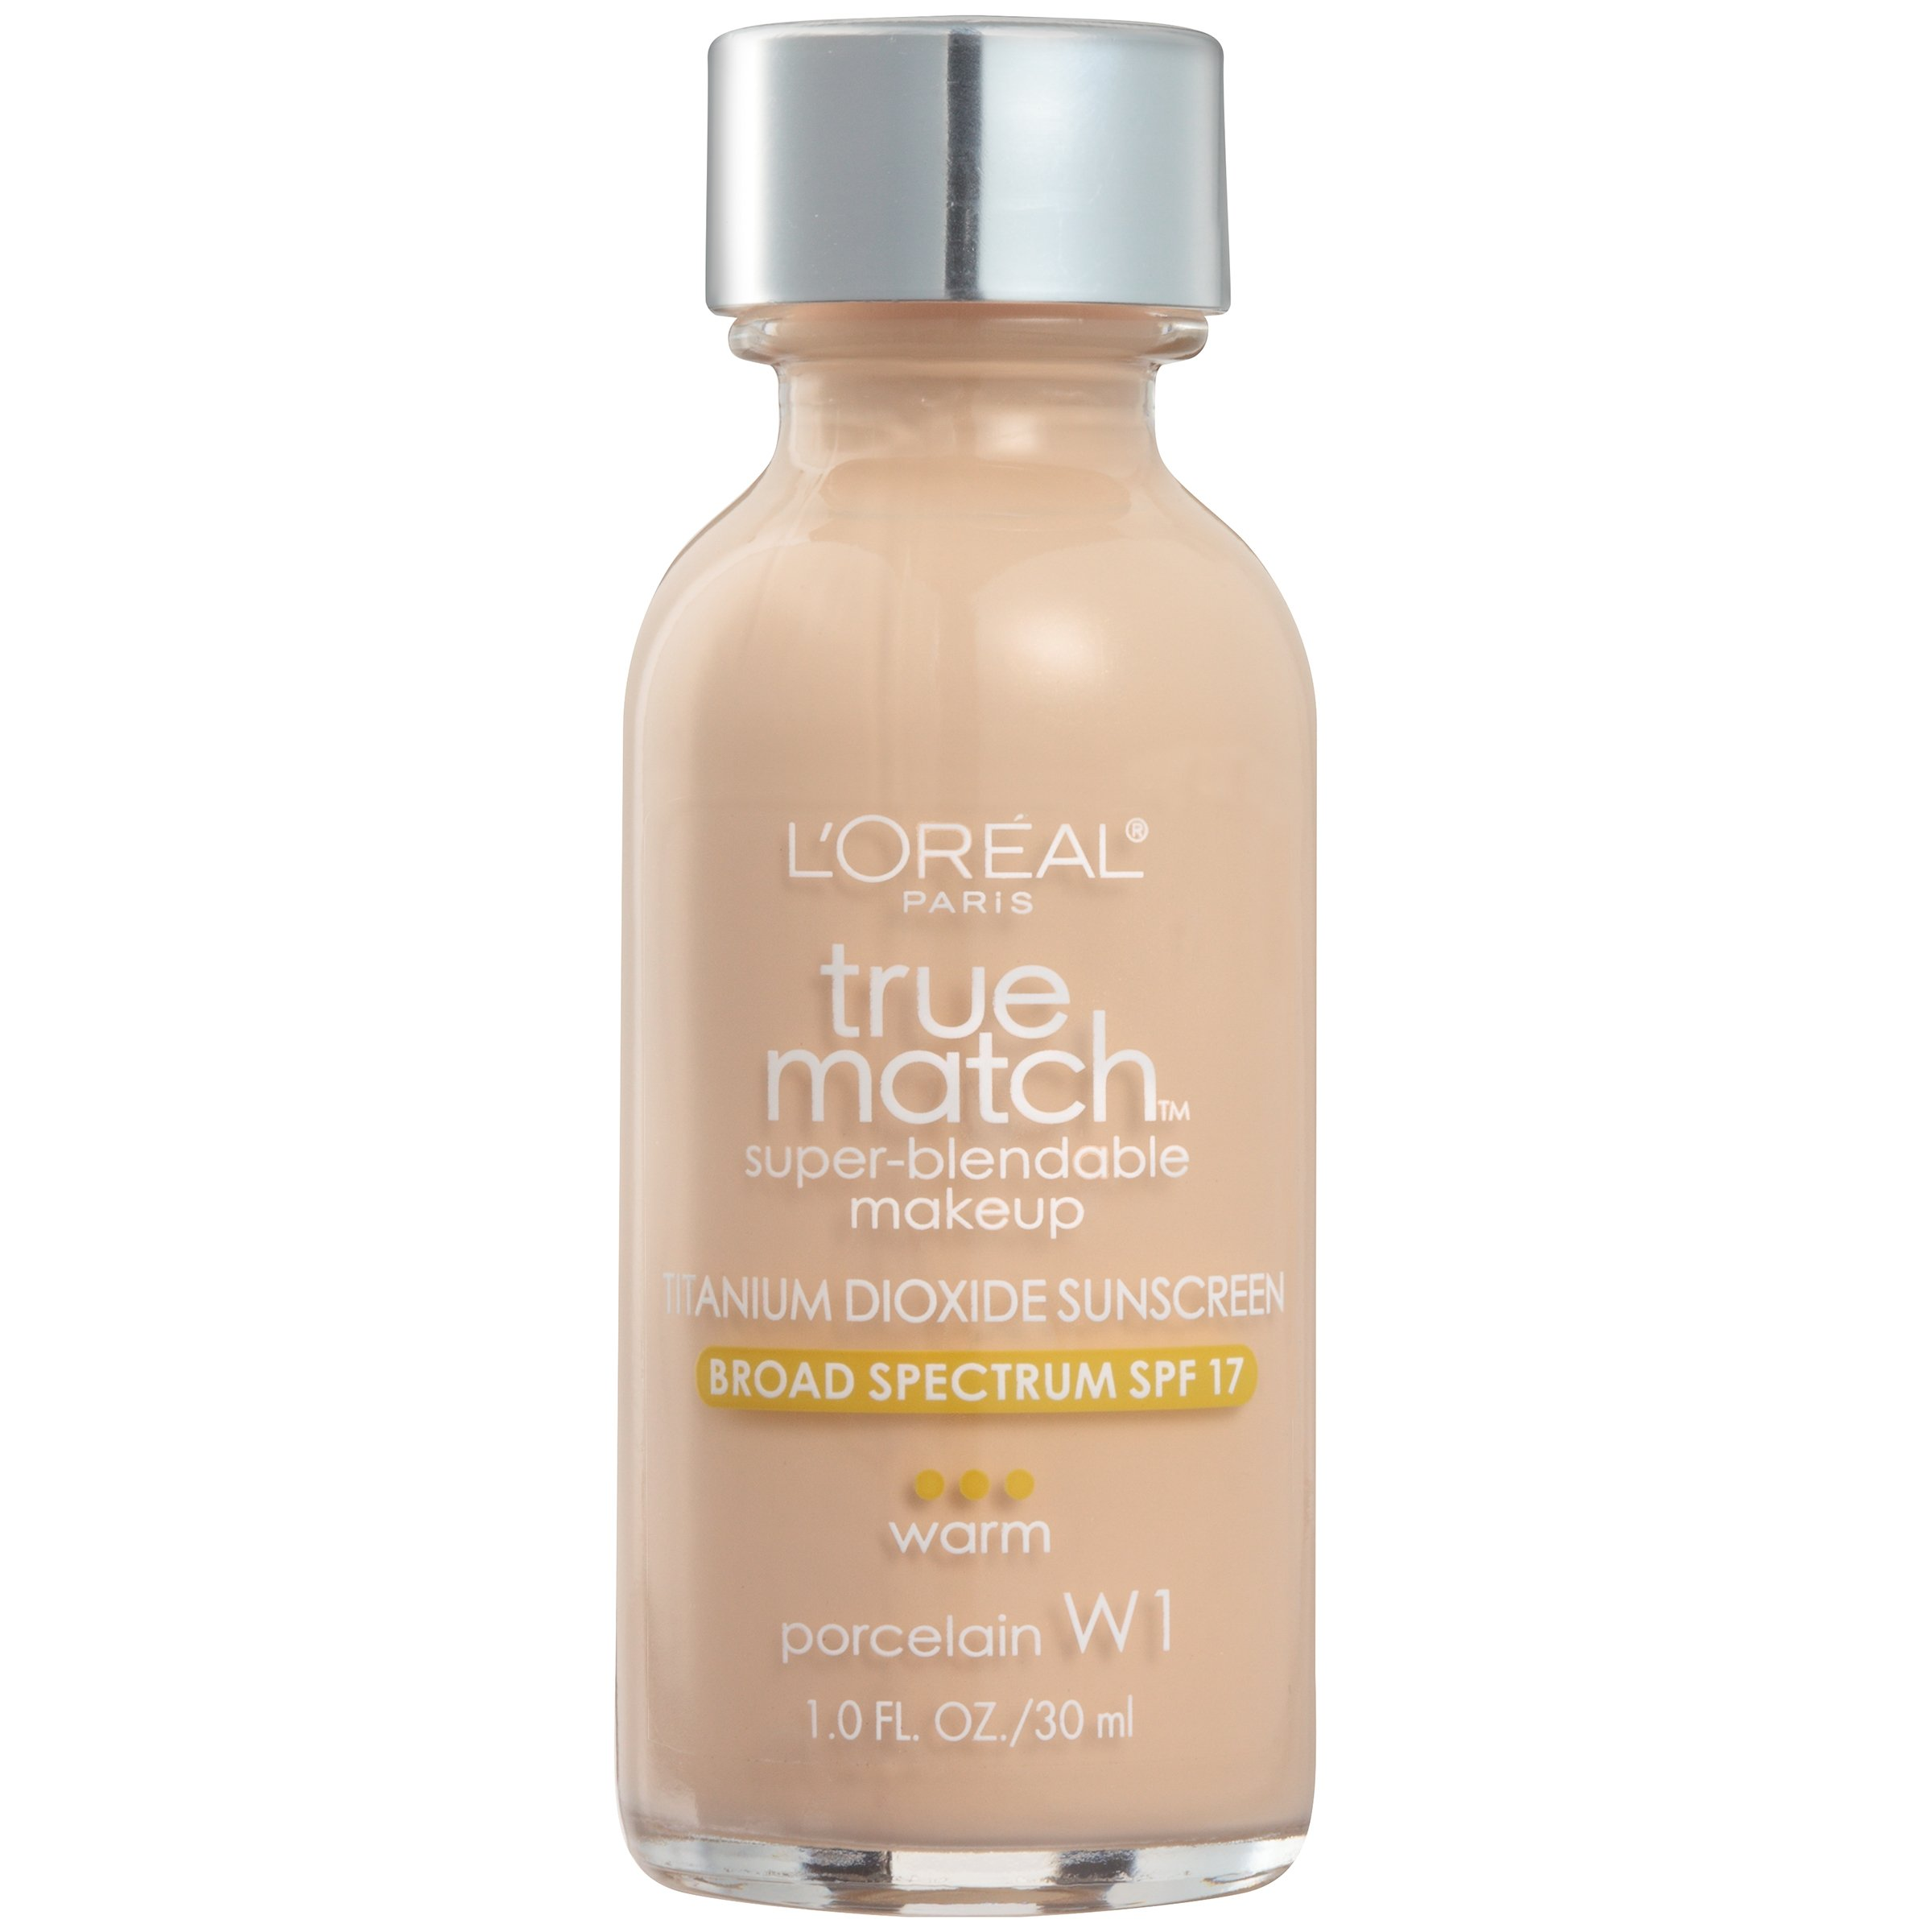 L'Oréal Paris True Match Super-Blendable Foundation Makeup, Porcelain, 1 fl. oz.